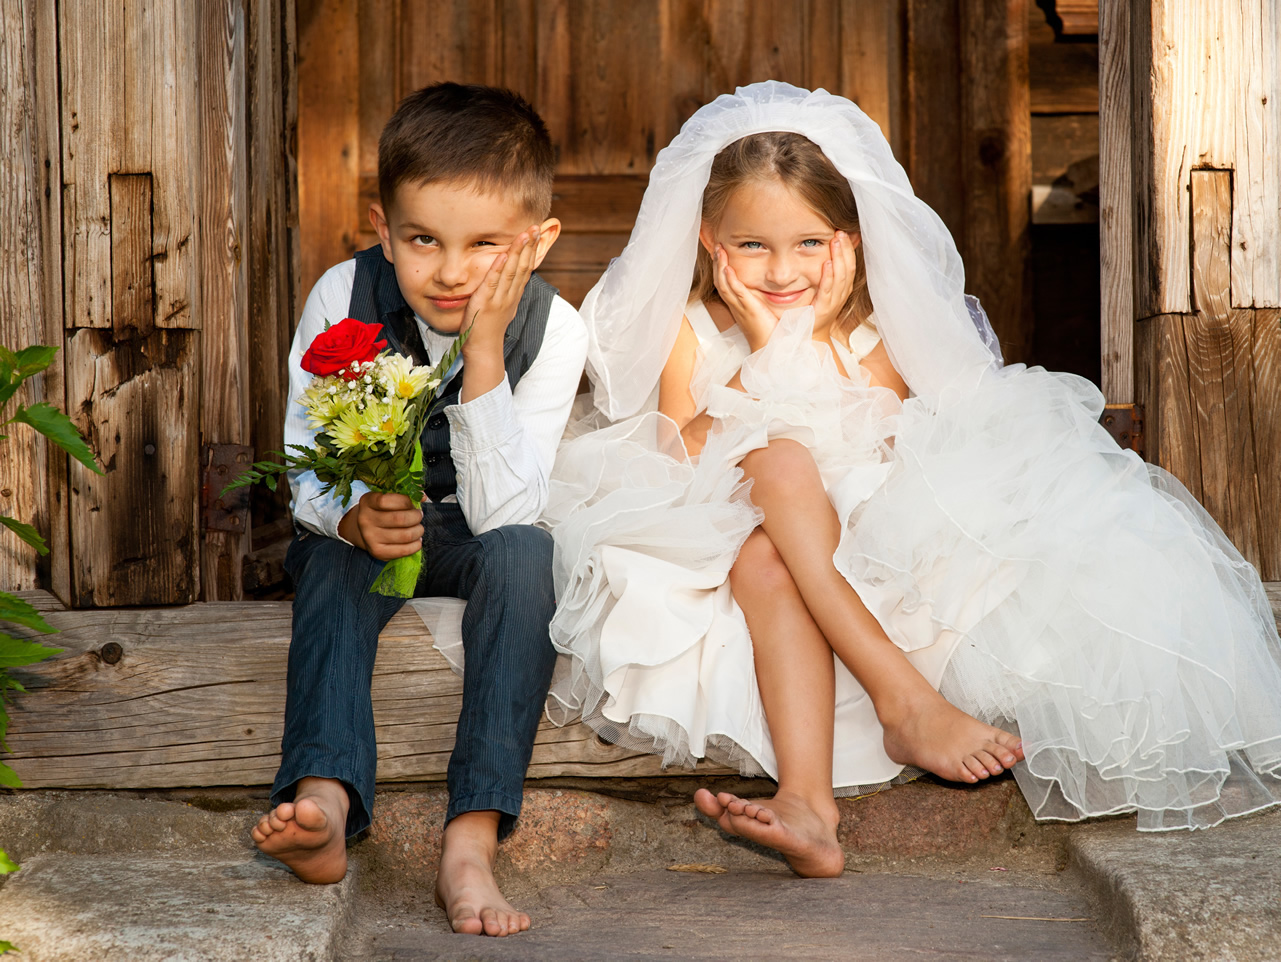 Wedding Childcare Services